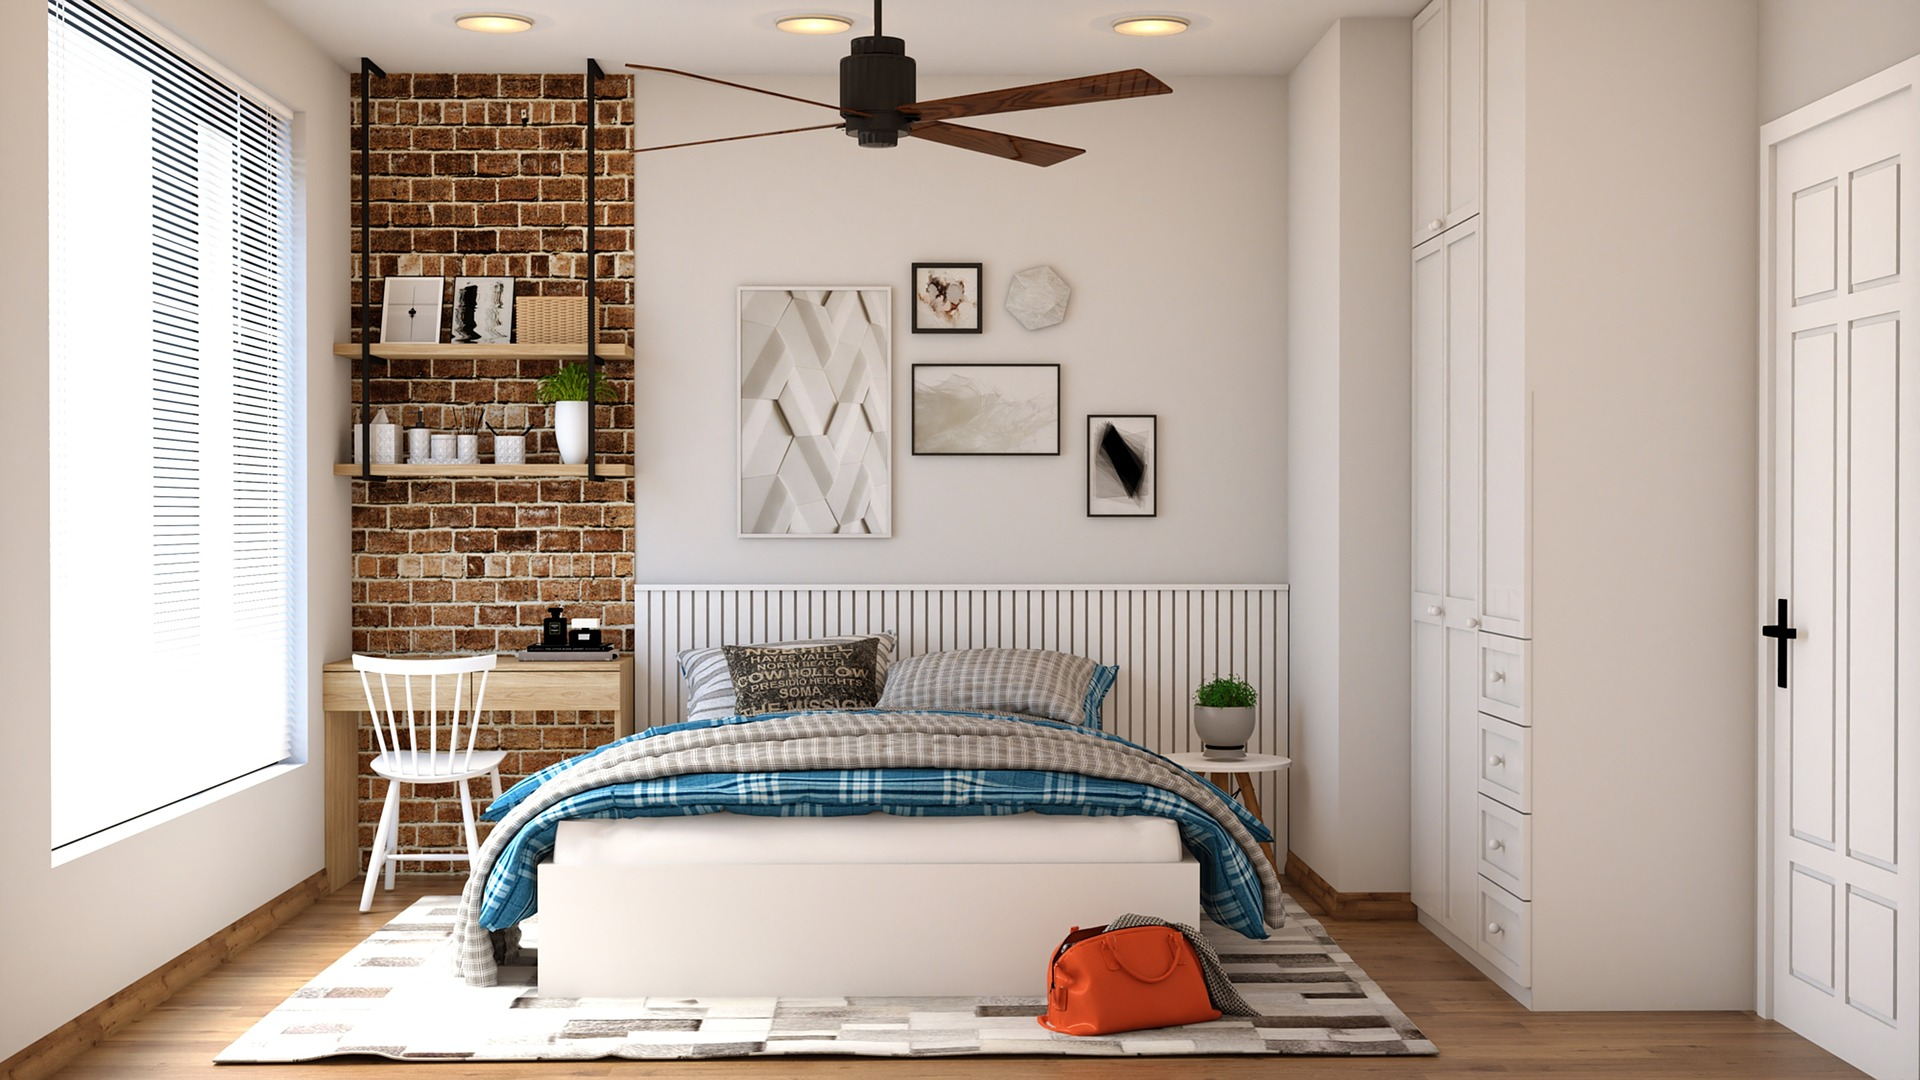 Bedroom With Mattress - Learn How To Recycle Your Mattress